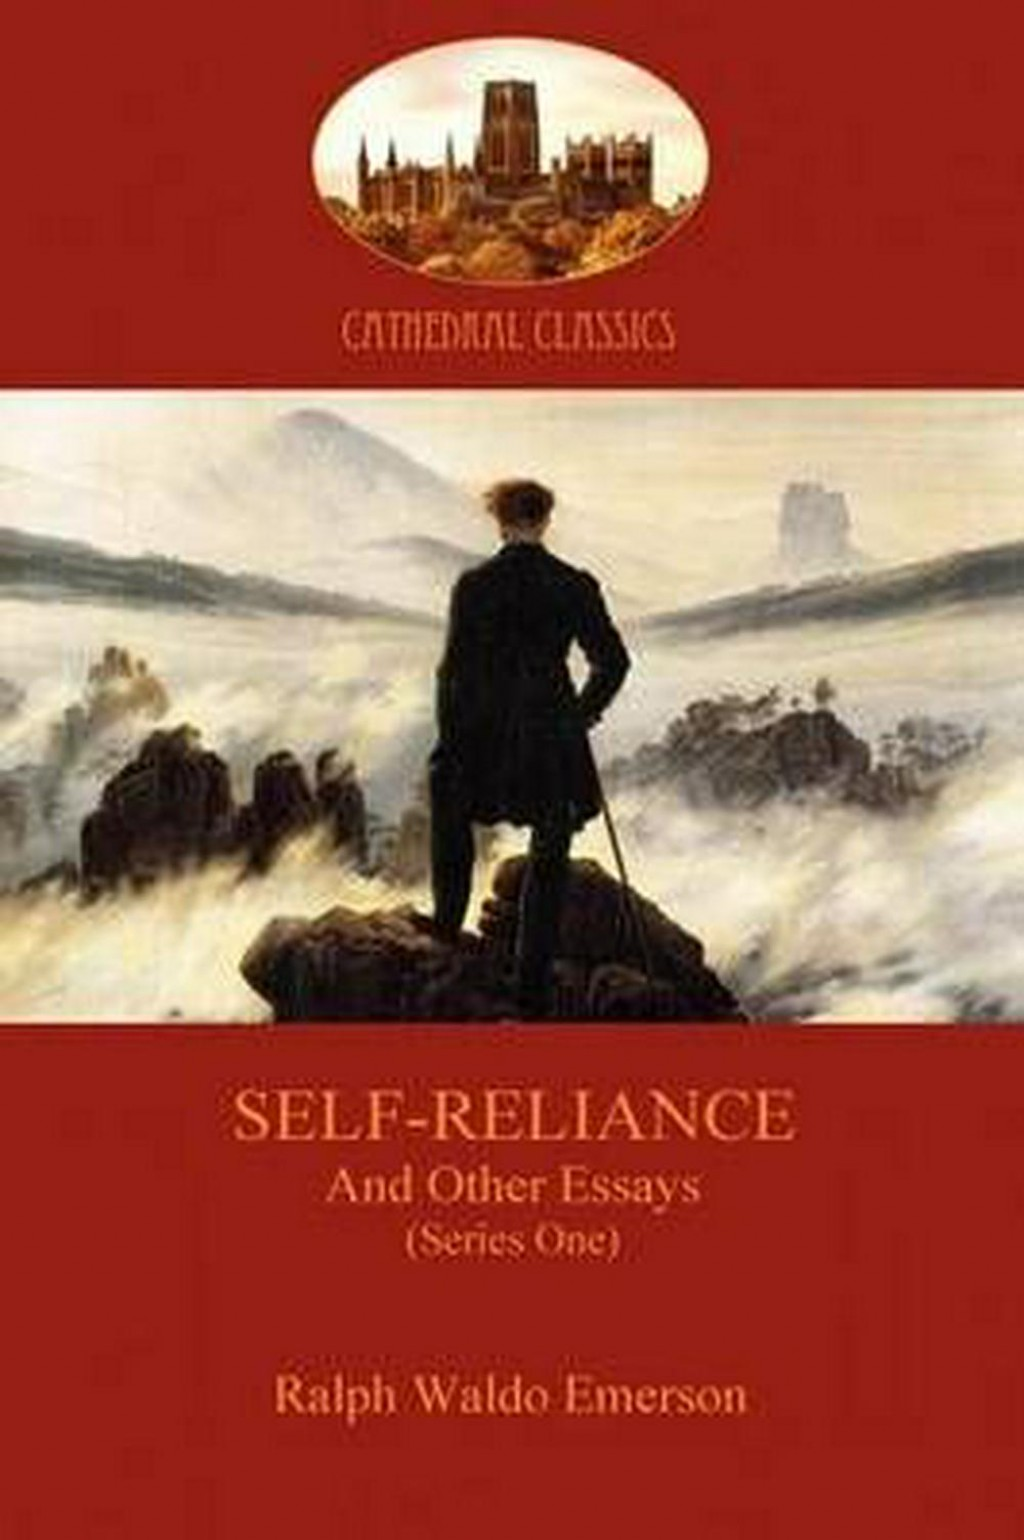 015 Essay Example Self Reliance And Other Essays Formidable Ekşi Self-reliance (dover Thrift Editions) Pdf Epub Large